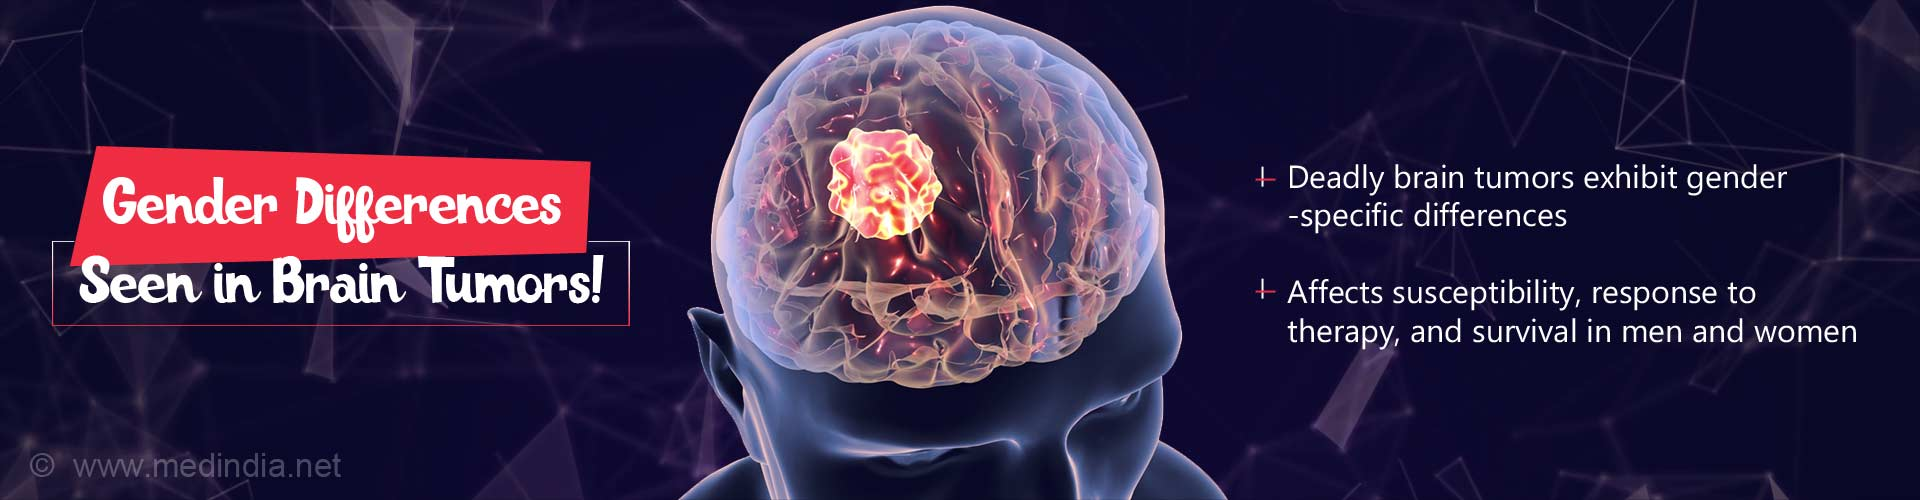 Gender Differences Exist in Brain Tumors